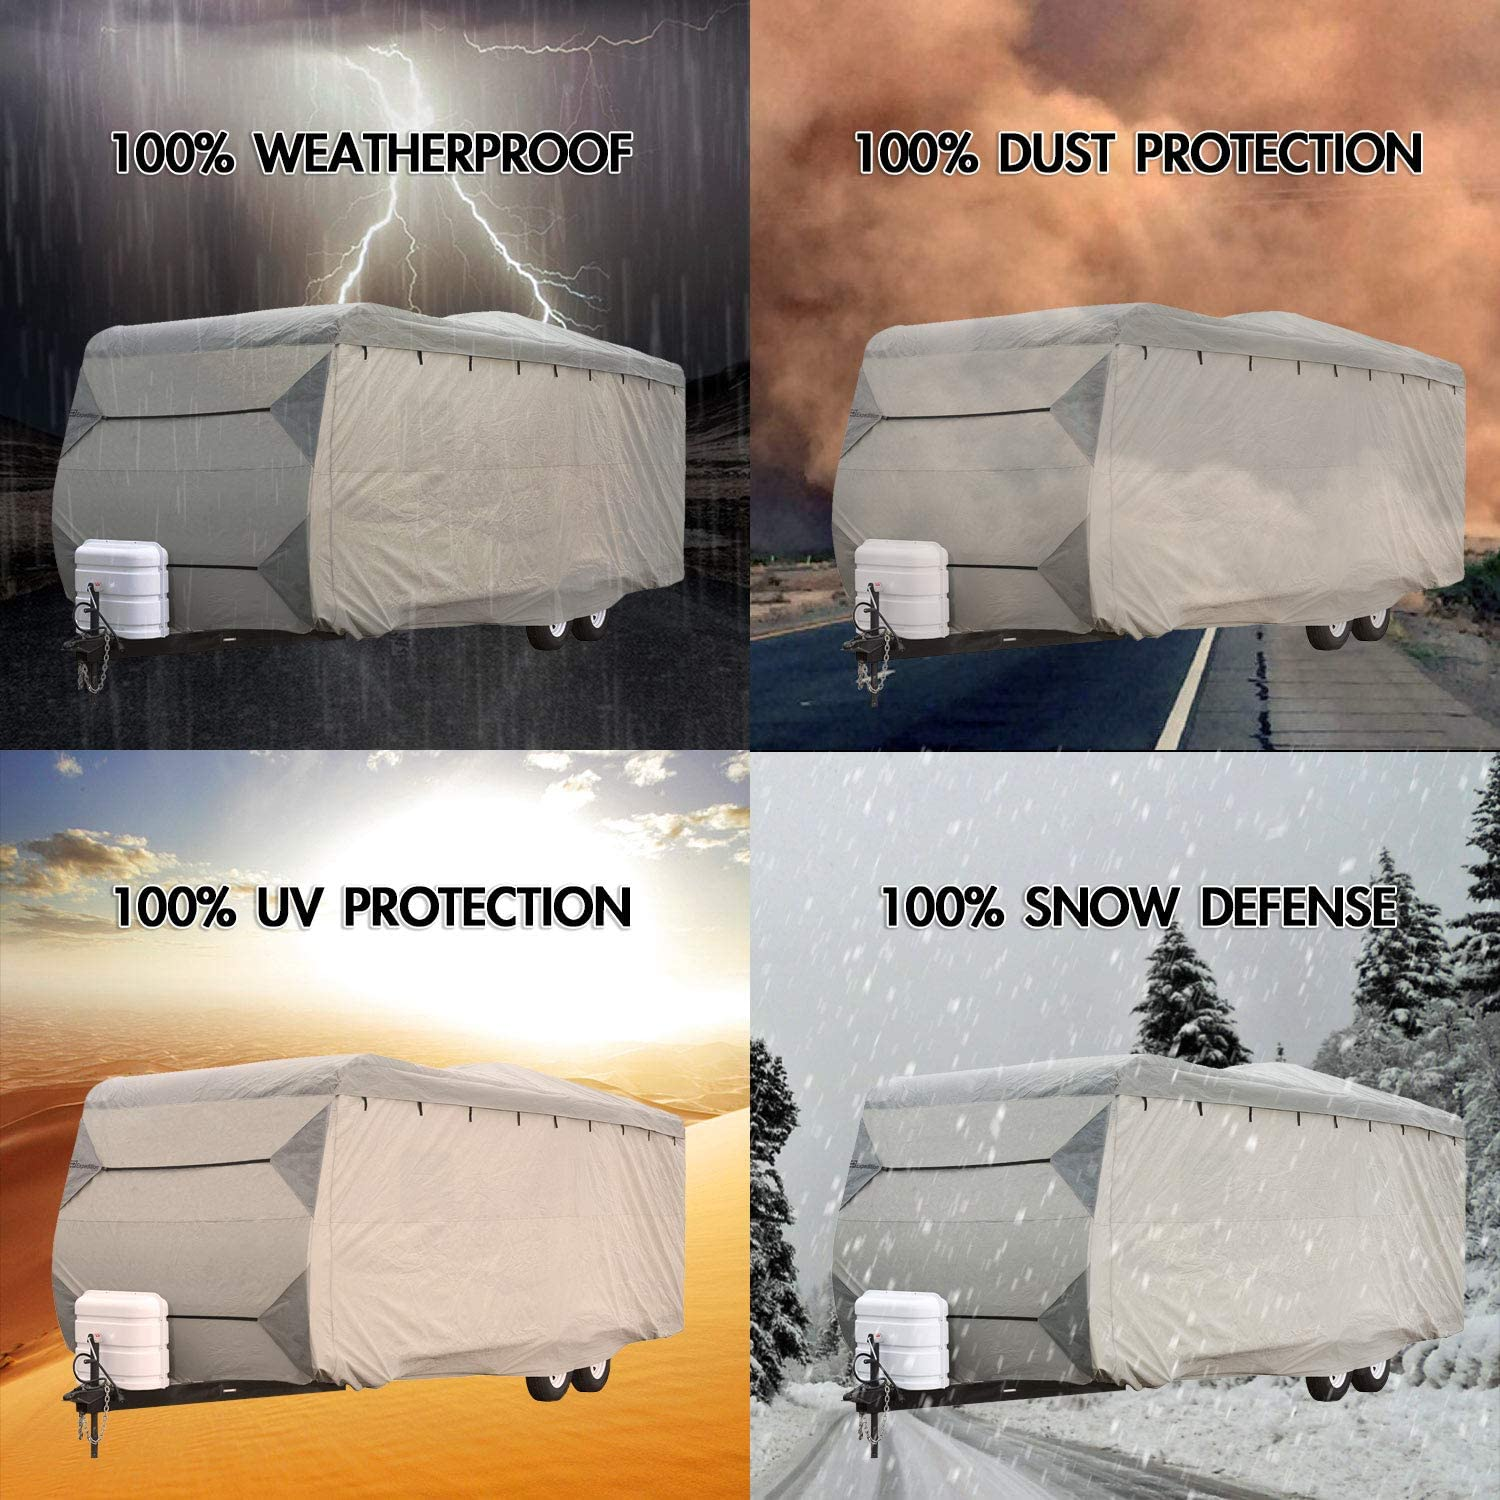 Waterproof Superior RV Motorhome Travel Trailer//Toy Hauler Cover Fits Length 20-22 Travel Trailer Camper Zippered Panels Allow Access To The Door Engine Side Storage Areas and Ramp Door